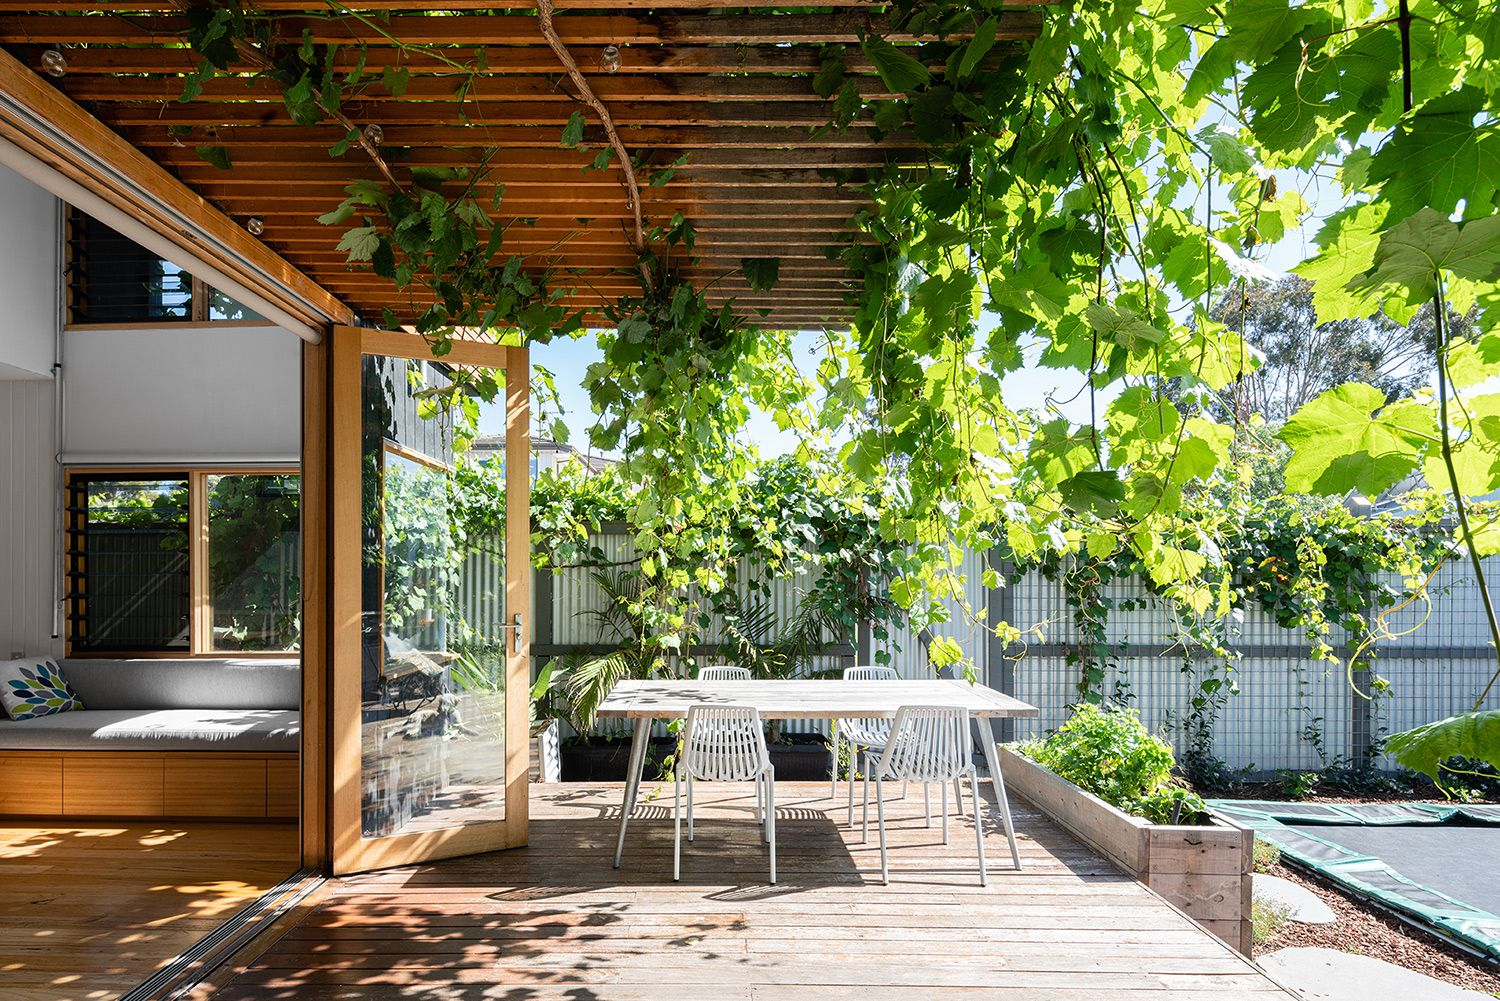 https://www.bencallery.com.au/wp-content/uploads/2015/05/42_-Callery-House-Ben-Callery-Architects-web.jpg